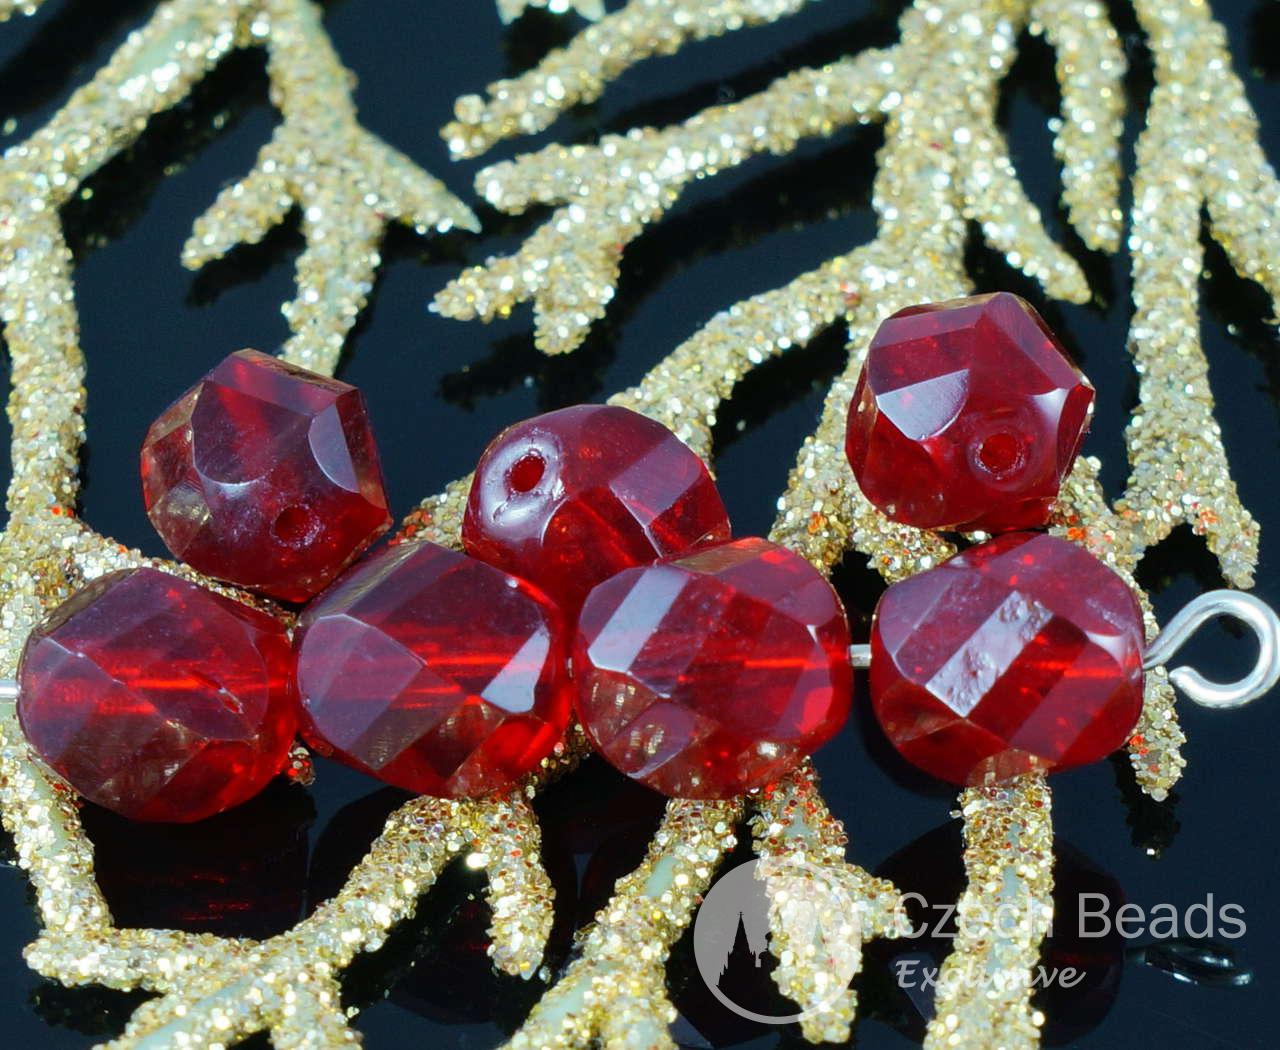 Ruby Red Crystal Czech Glass Twisted Cut Spiral Faceted Round Beads Fire Polished 8mm 18pcs for $2.4 from Czech Beads Exclusive